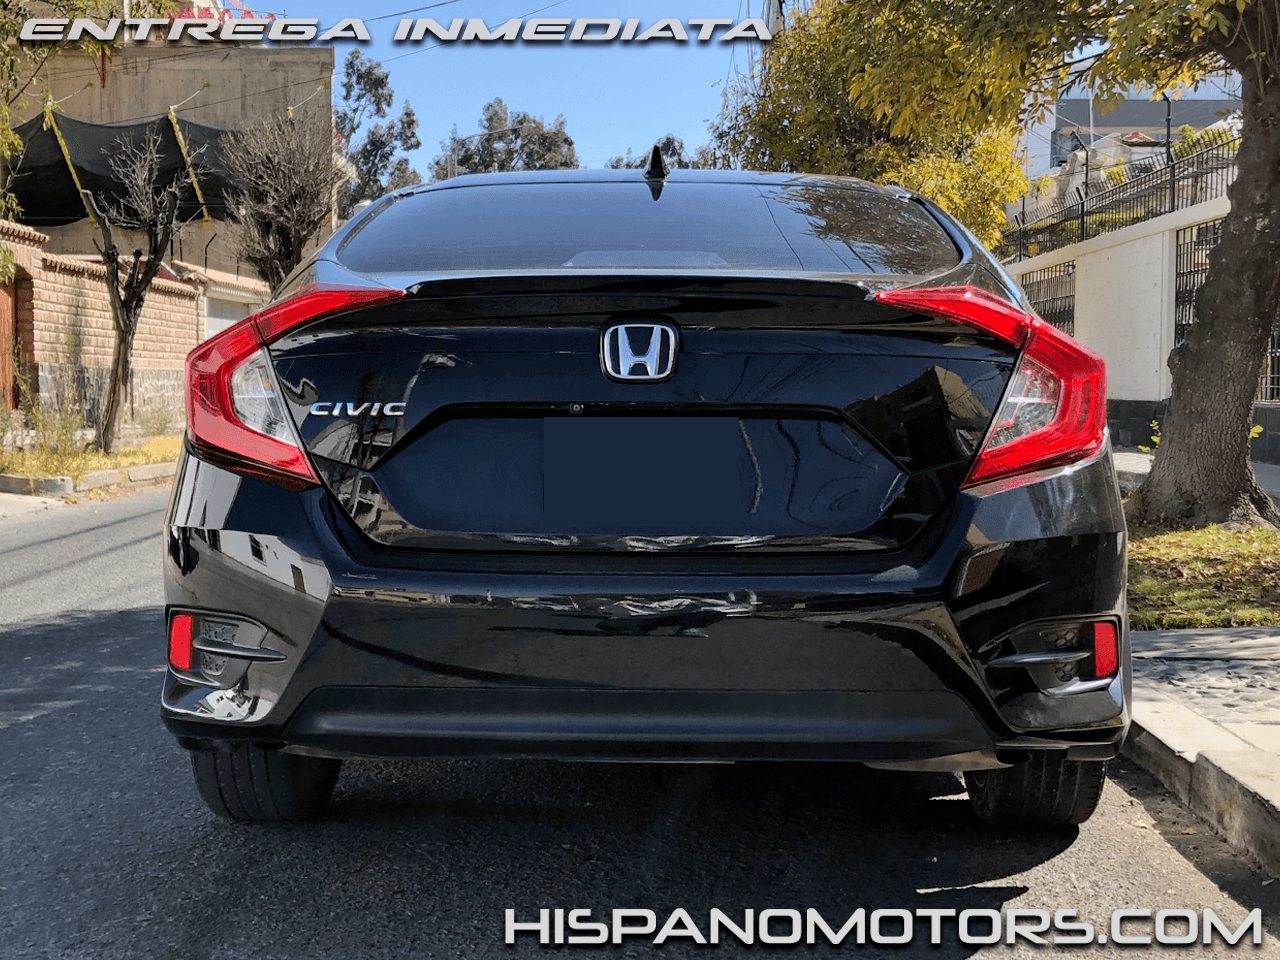 2017 HONDA CIVIC  EX-T 1.5 TURBO (MANUAL)  - Foto del auto importado